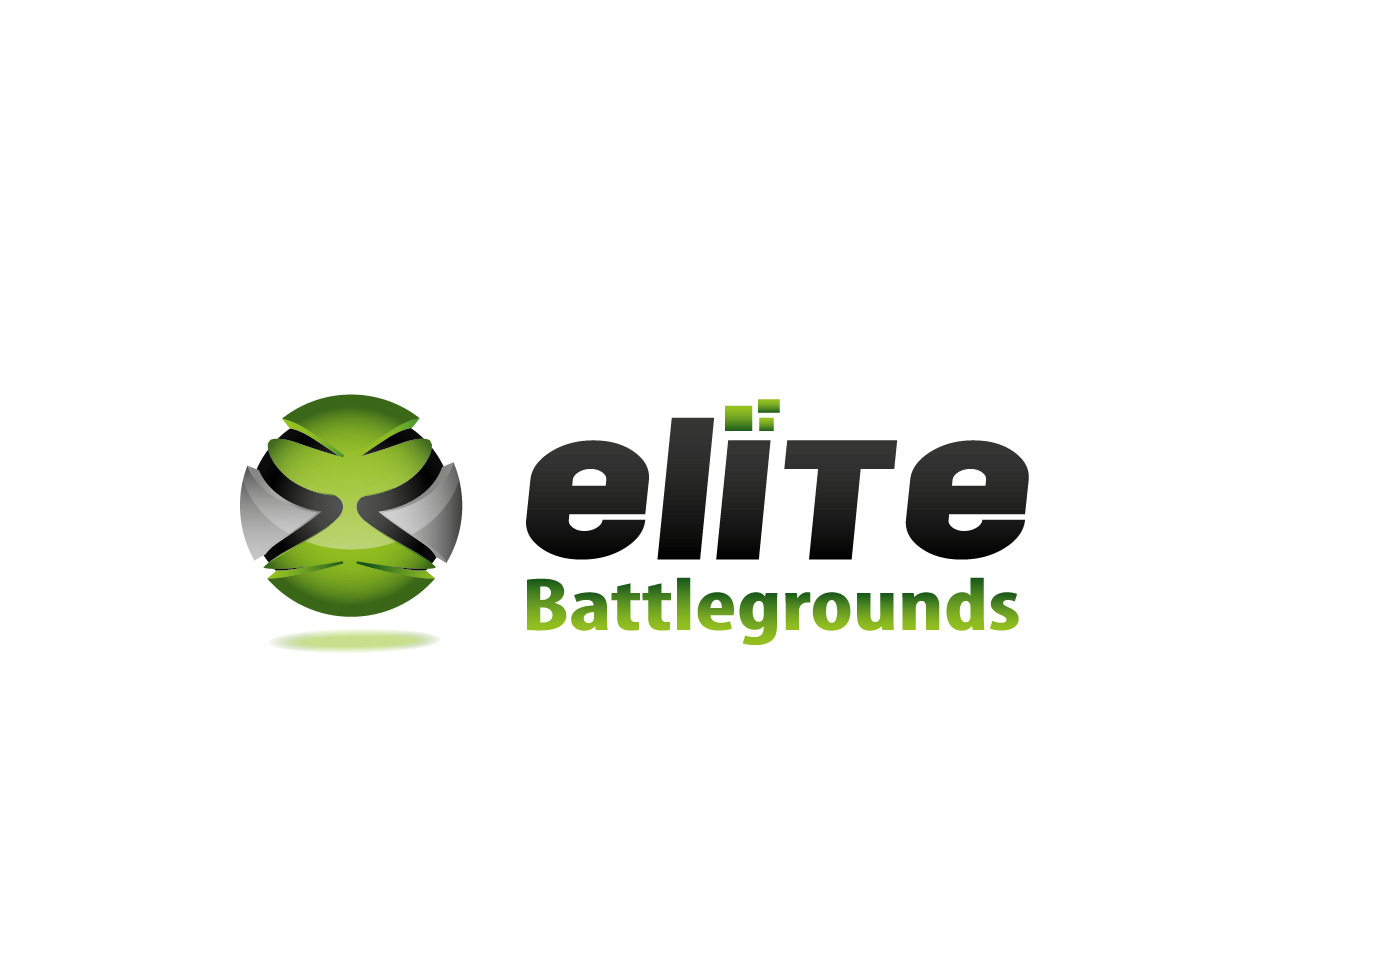 Logo Design by 354studio - Entry No. 82 in the Logo Design Contest Creative Logo Design for Elite Battlegrounds.